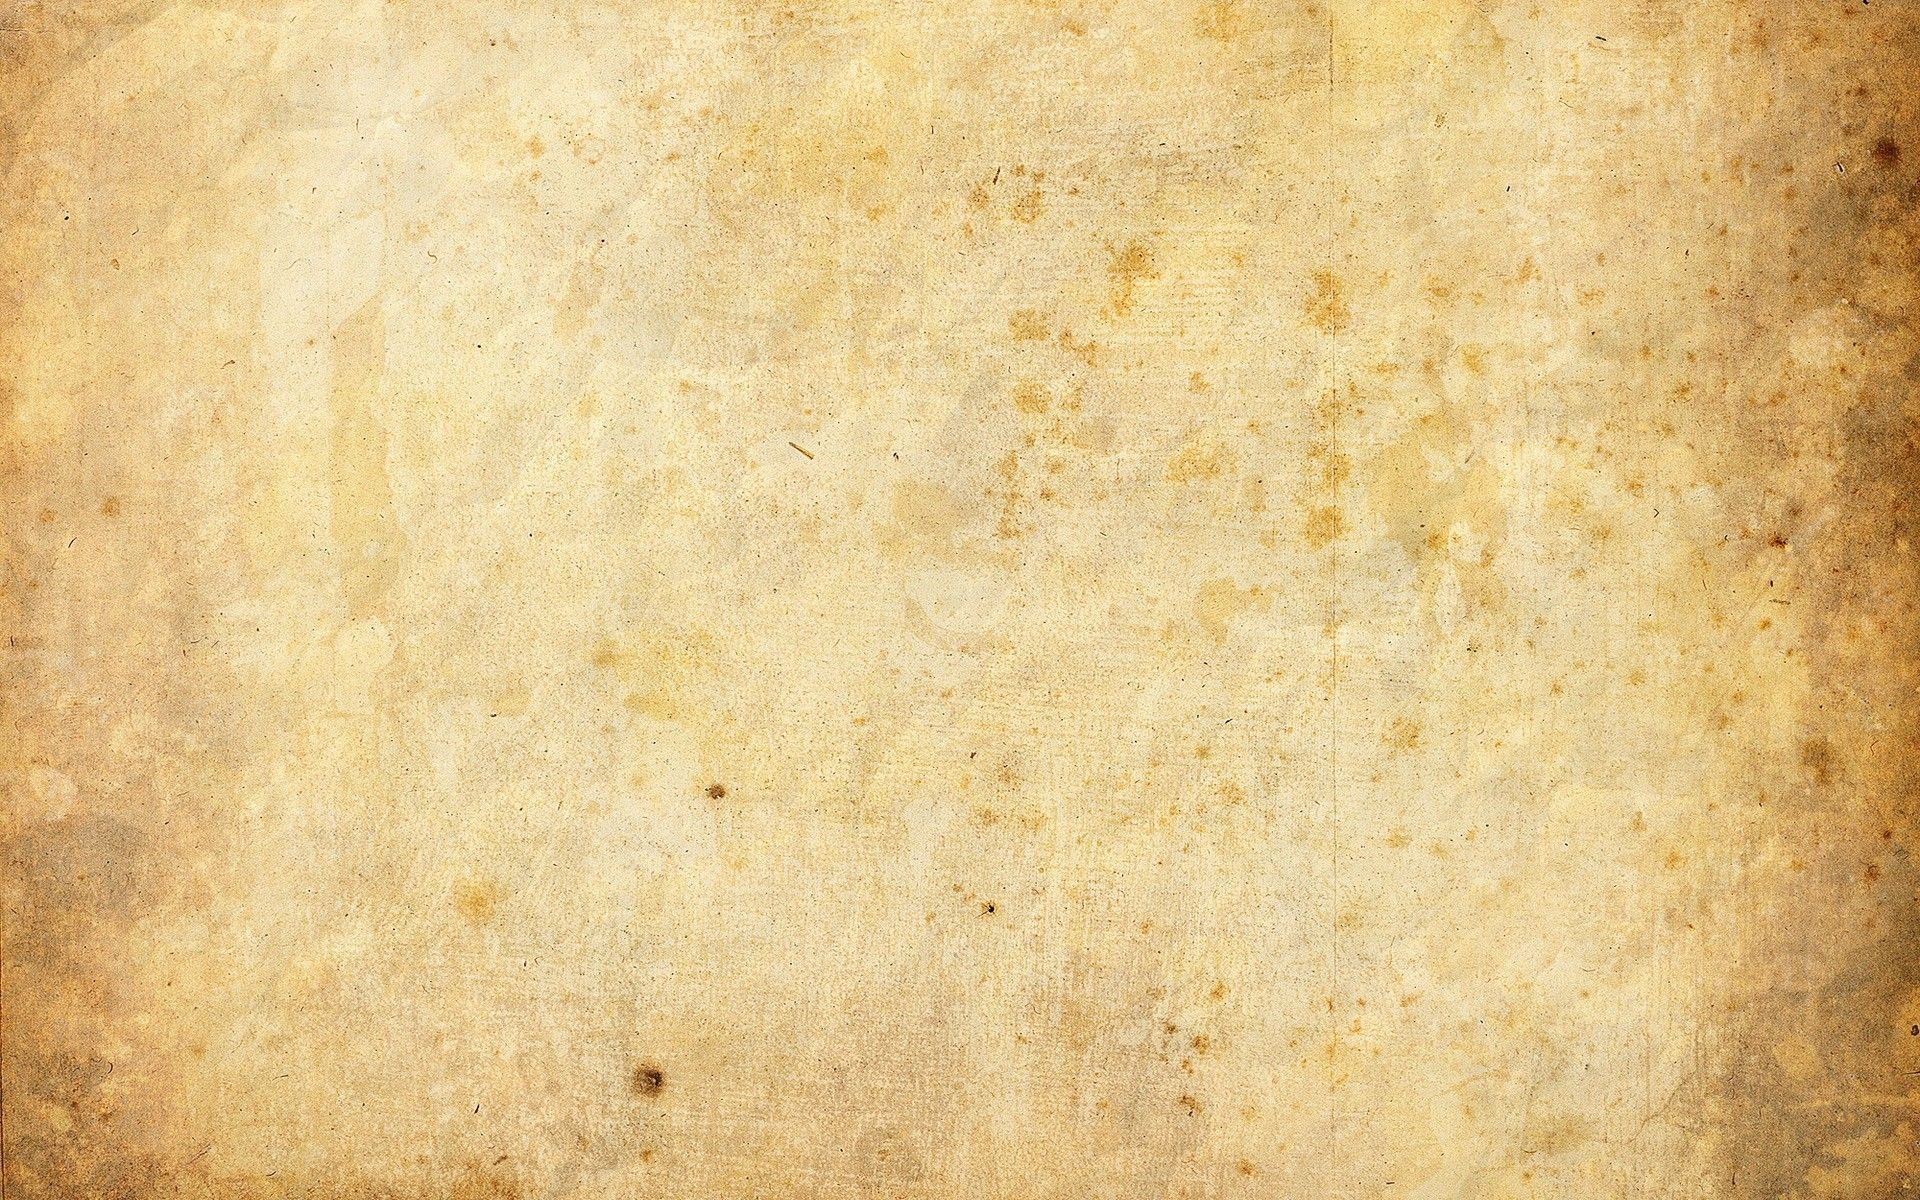 Old Paper Texture Wallpapers - Top Free Old Paper Texture ...